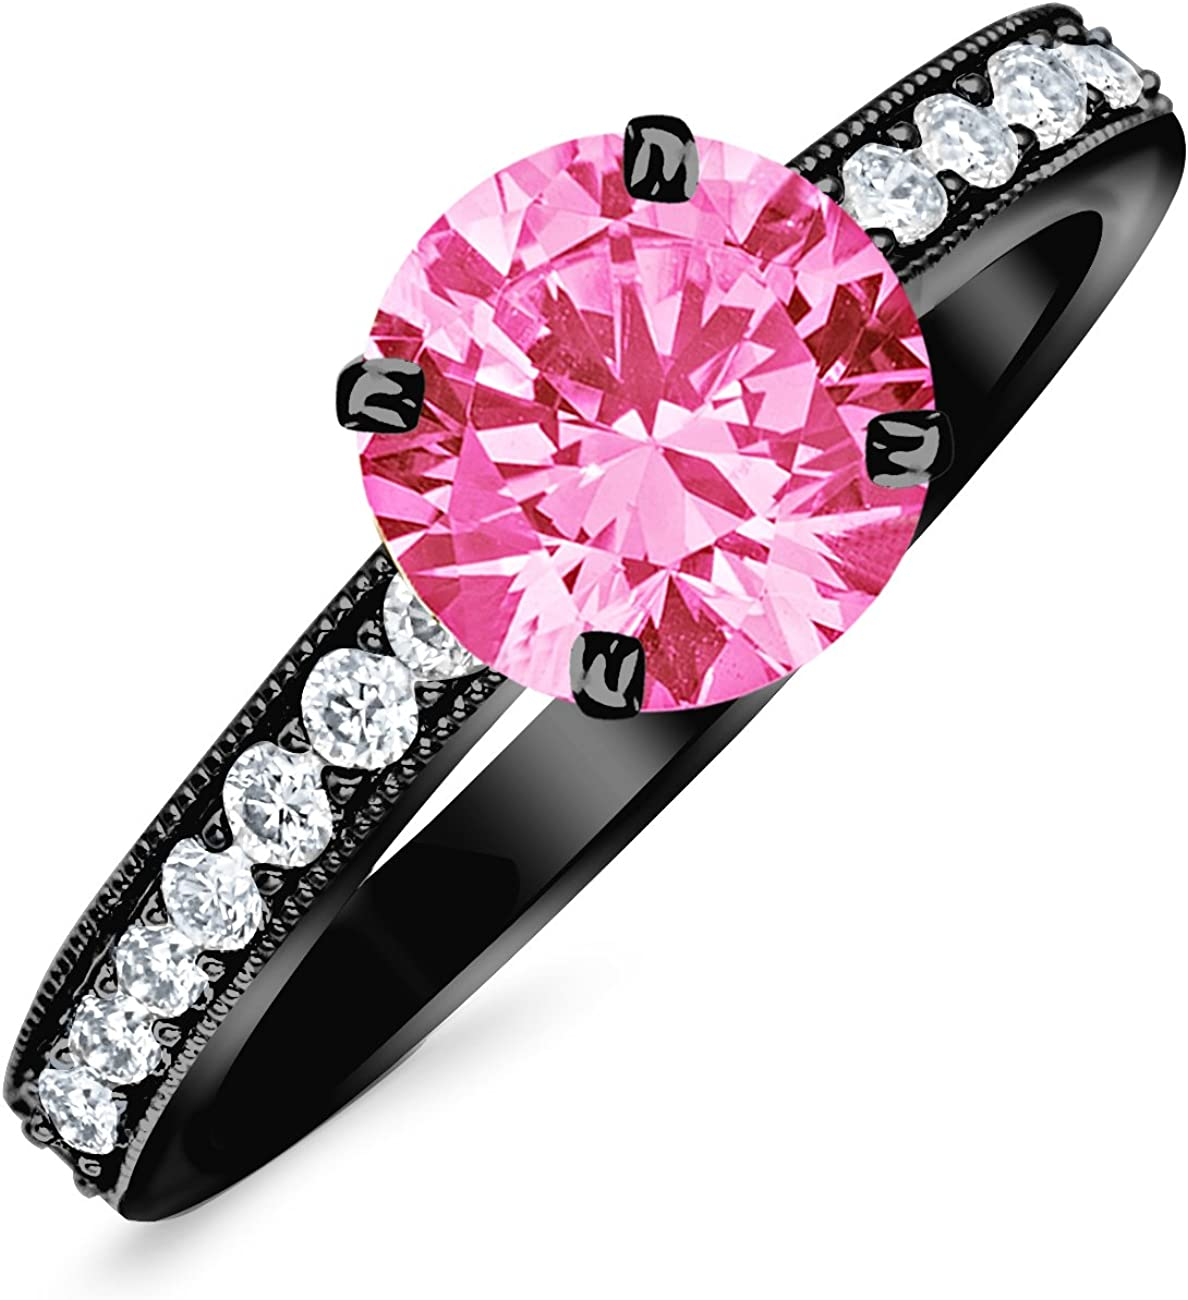 1.05 Carat 14K Black Gold Classic Side Stone Pave Set With Milgrain Diamond Engagement Ring with a 0.75 Carat Natural Pink Sapphire Center (Heirloom Quality)